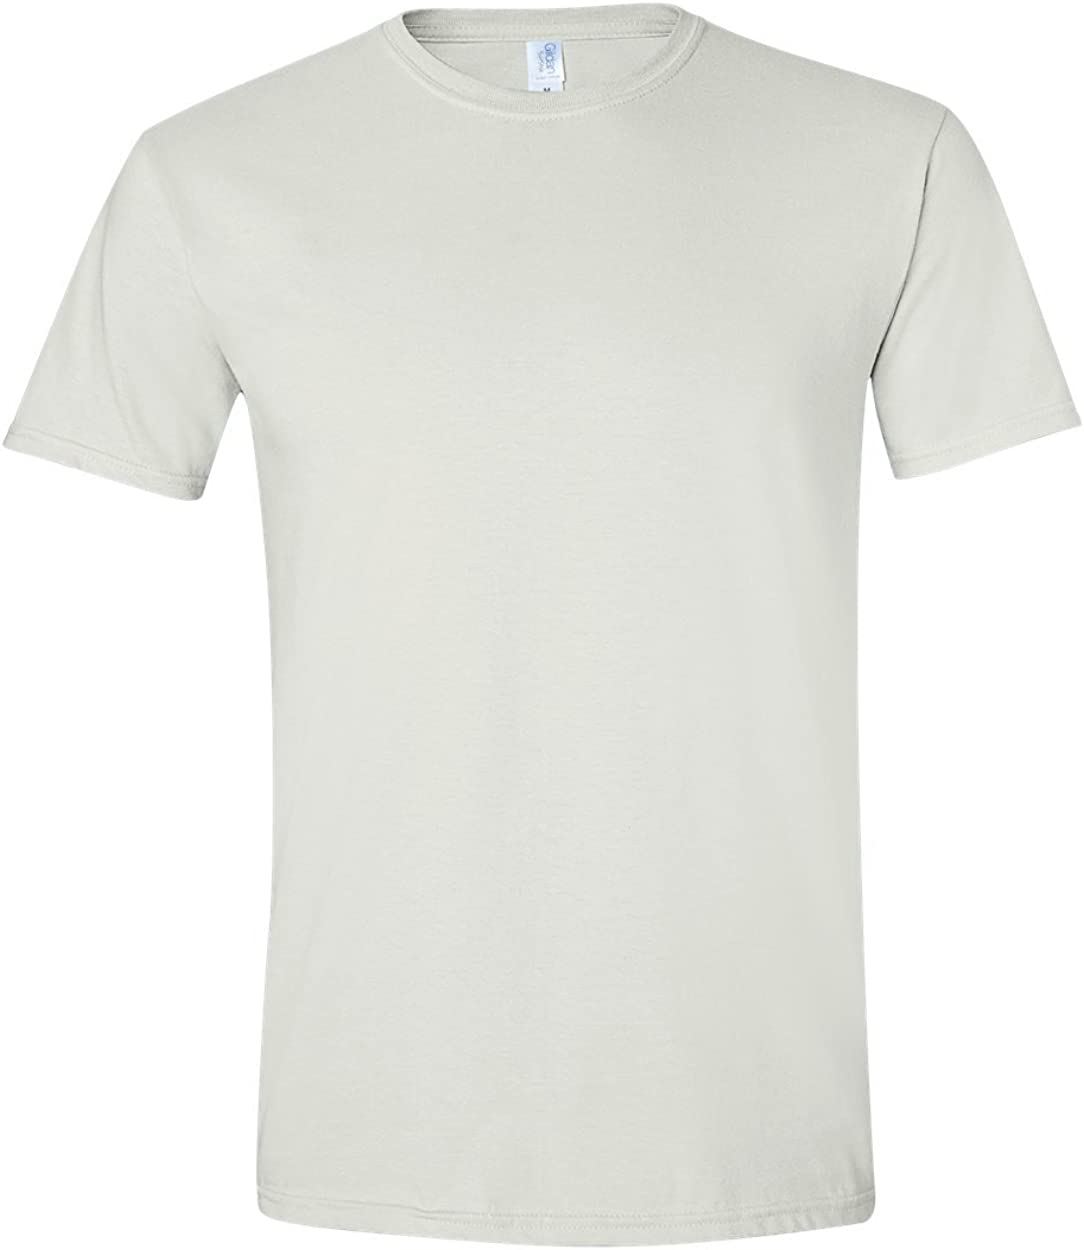 Gildan Mens Short Sleeve Soft-Style T-Shirt |